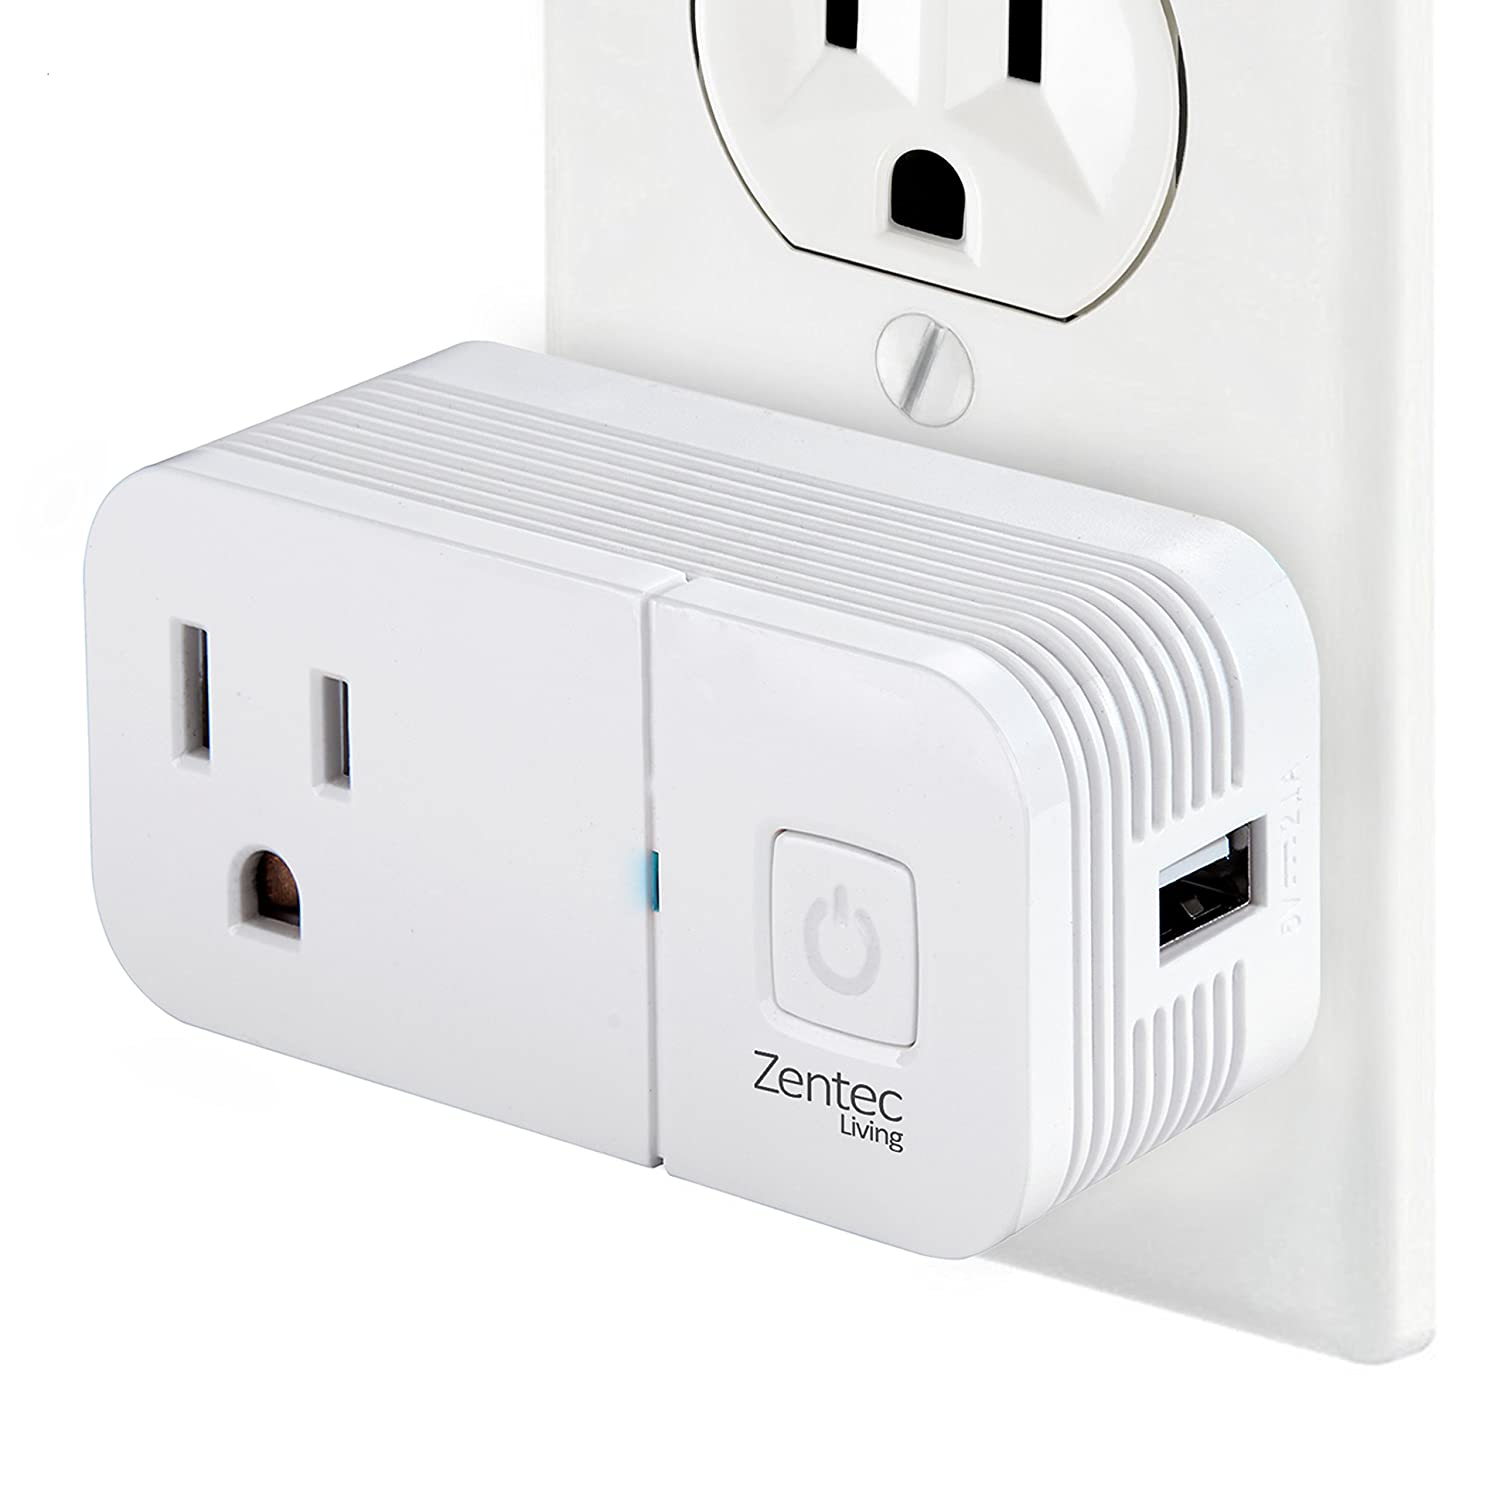 Zentec smart socket